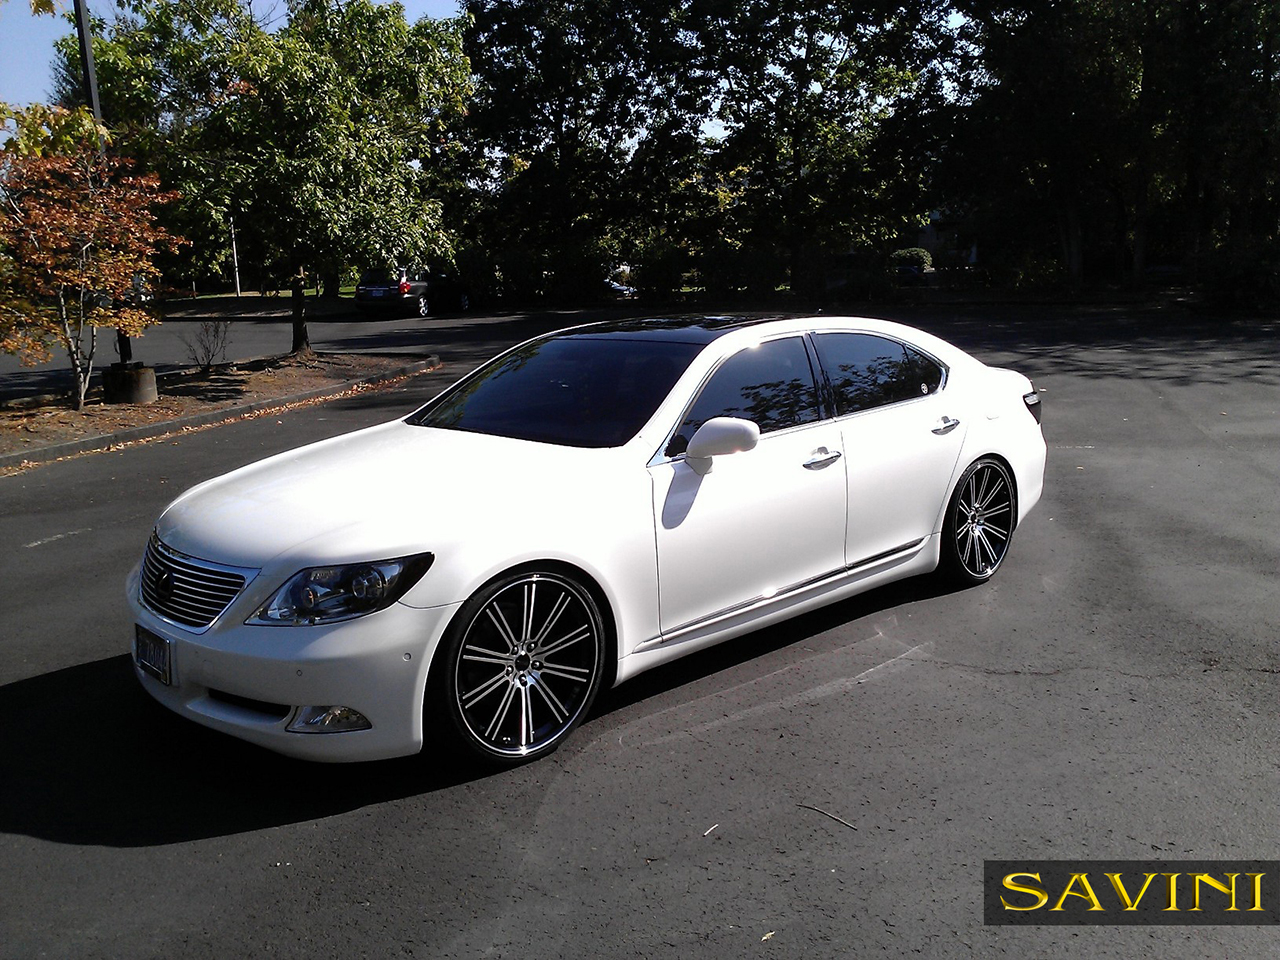 white-lexus-ls460-savini-wheels-black-di-forza-